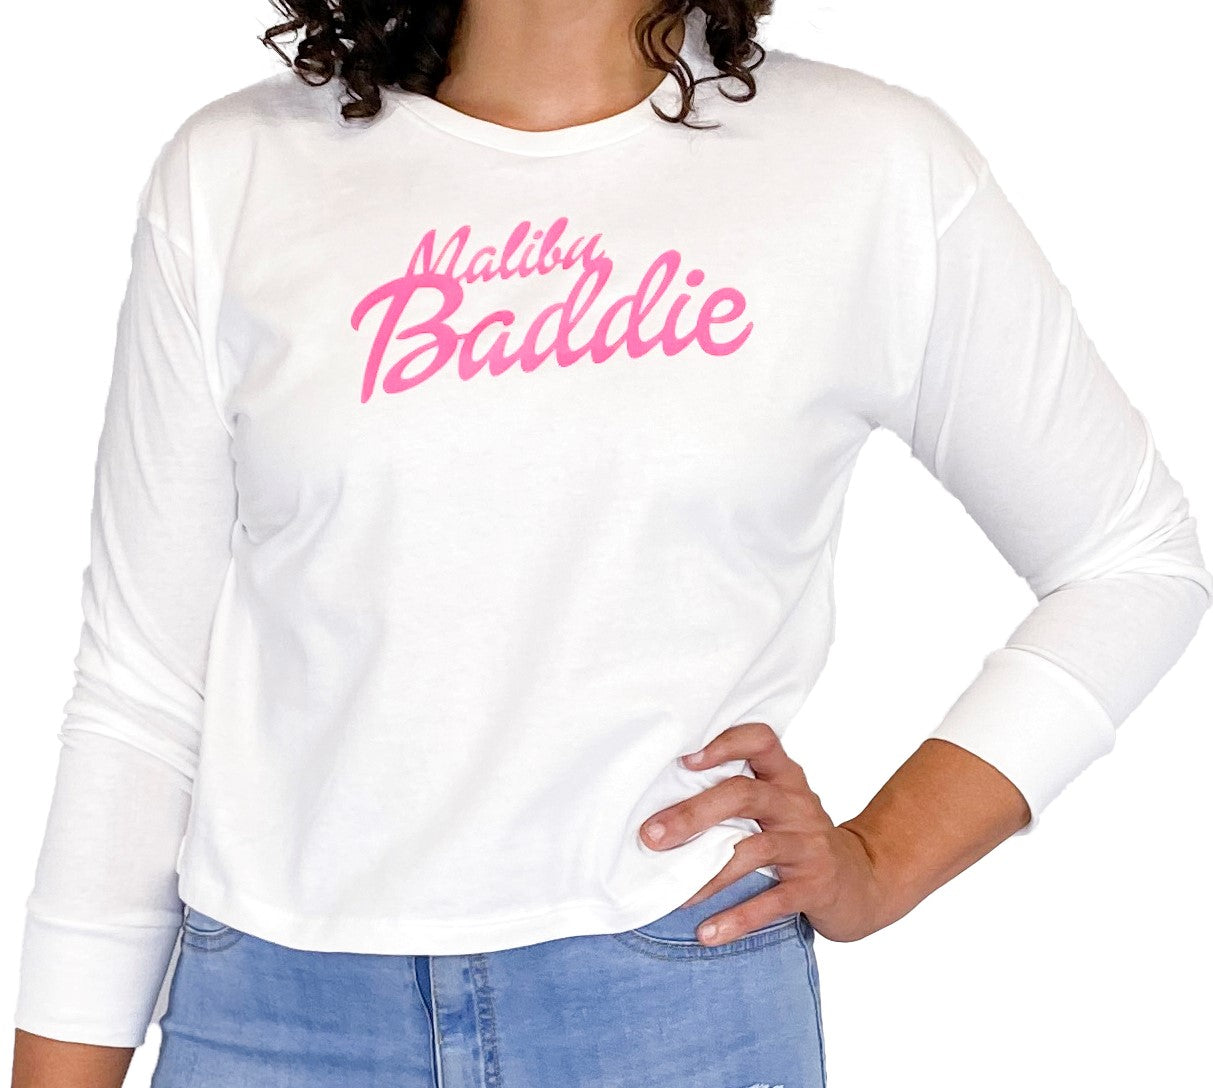 Malibu Baddie White Long Sleeve Crop Top - Style Adix